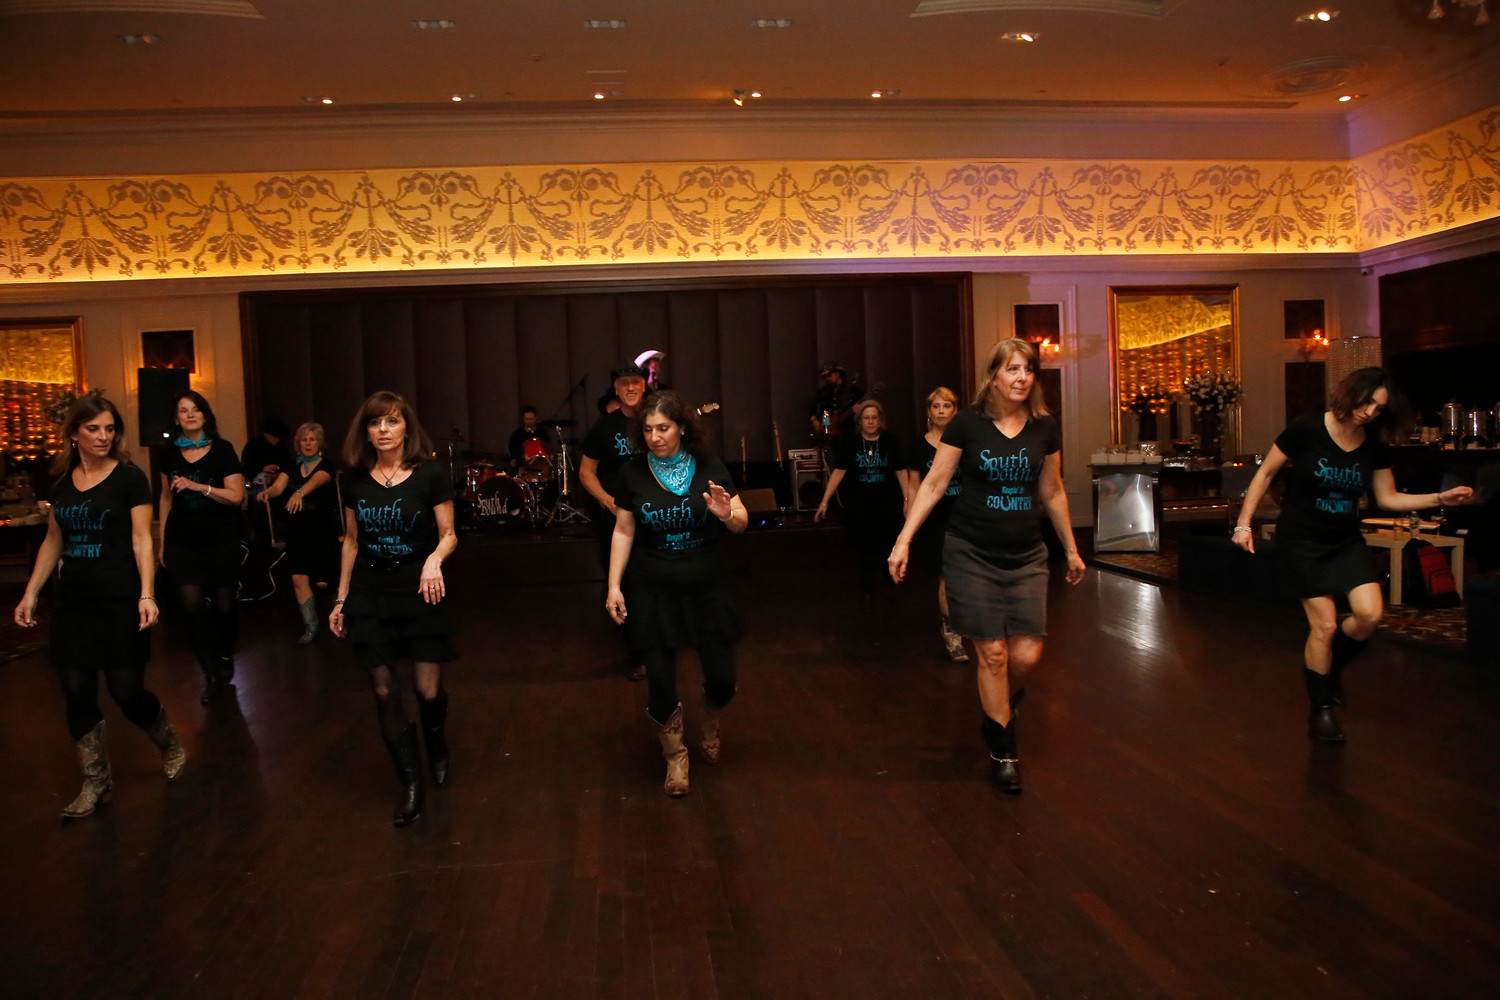 The SouthBound troupe demonstrated country line dancing at the Kulanu dinner.